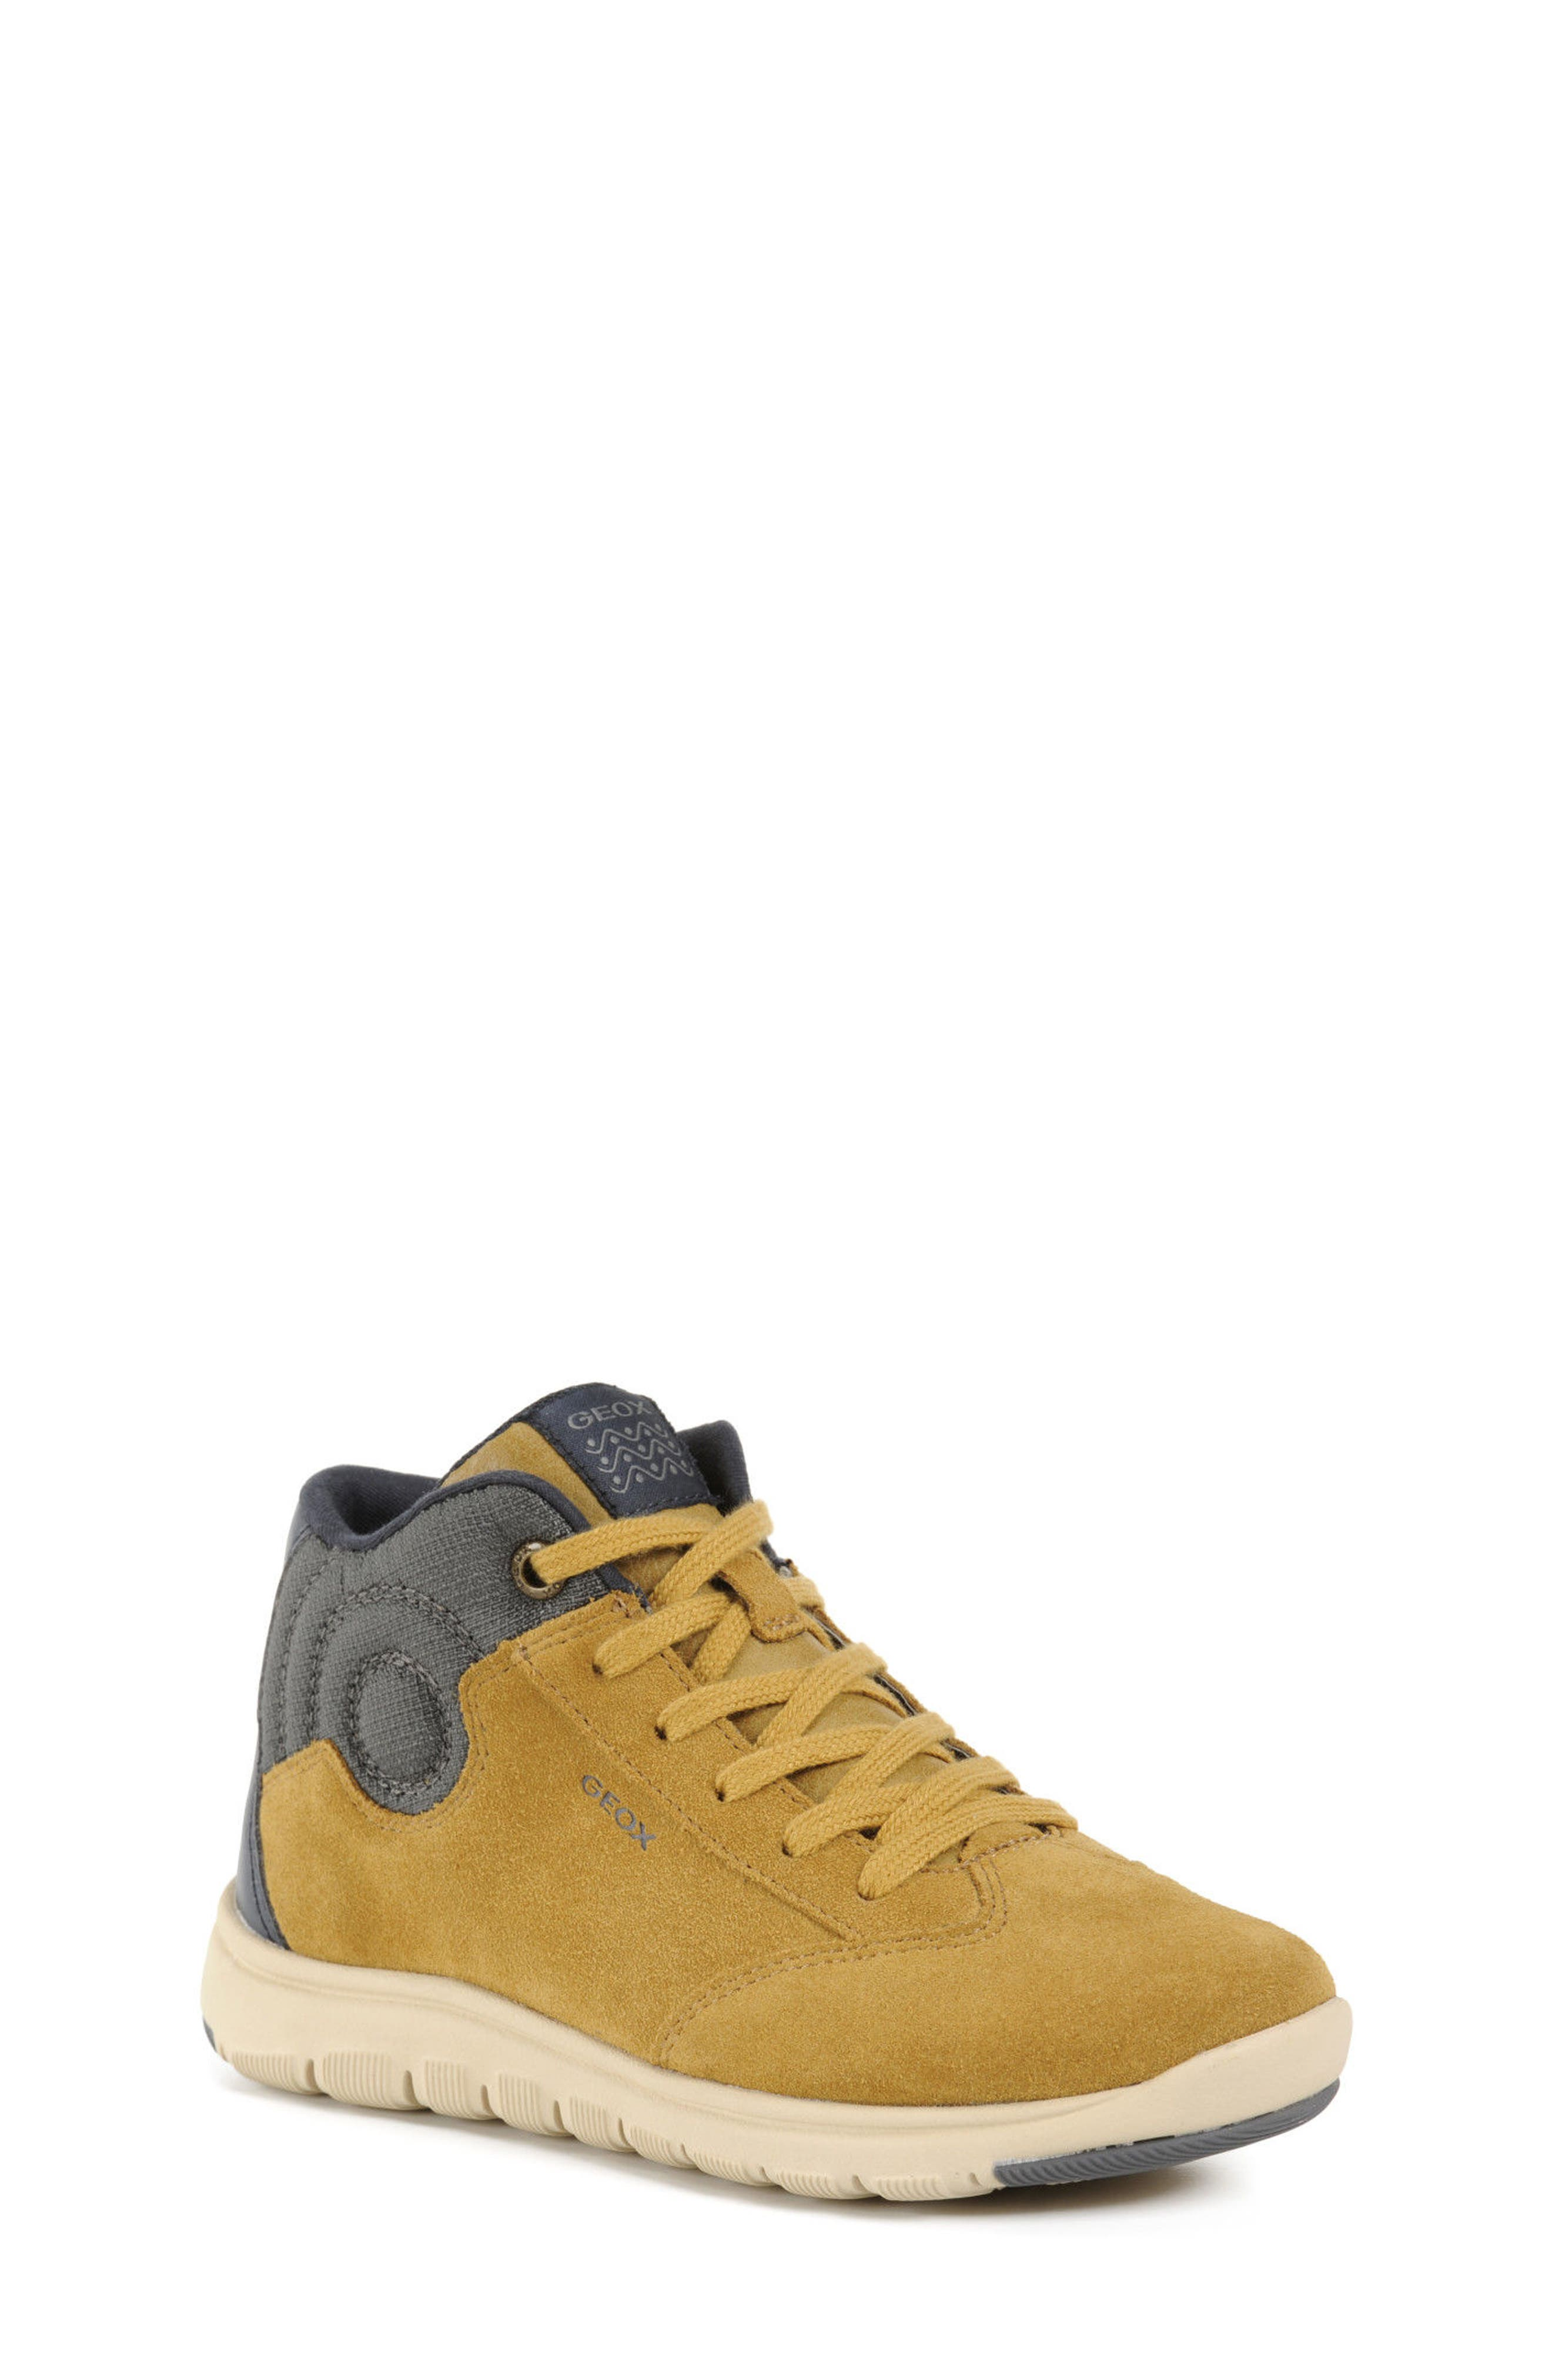 Xunday Mid Top Sneaker,                         Main,                         color, 020